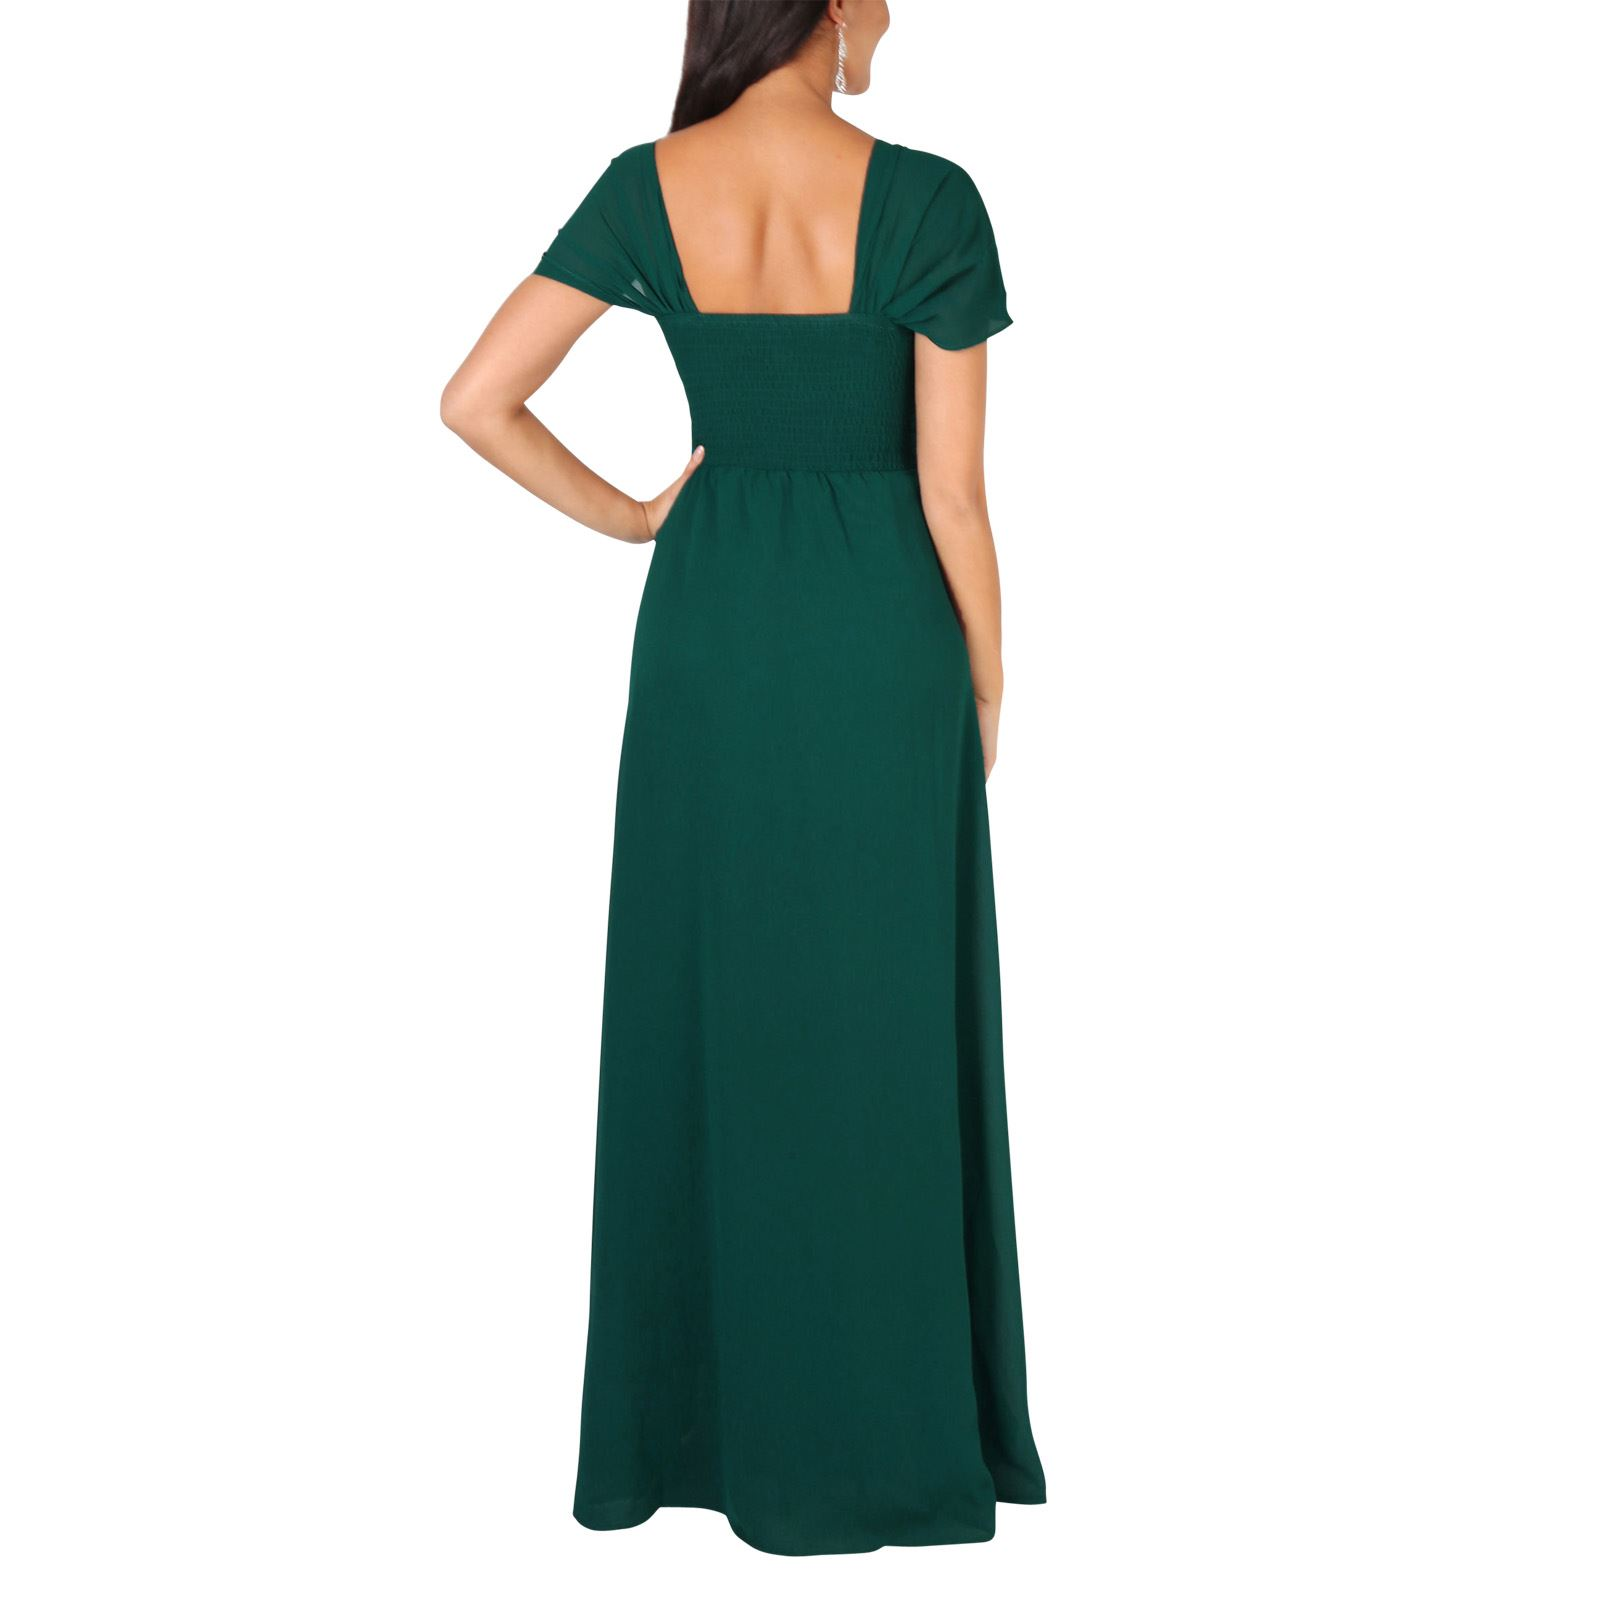 Womens-Formal-Evening-Wedding-Maxi-Prom-Dress-Long-On-Off-Shoulder-Ball-Gown thumbnail 21